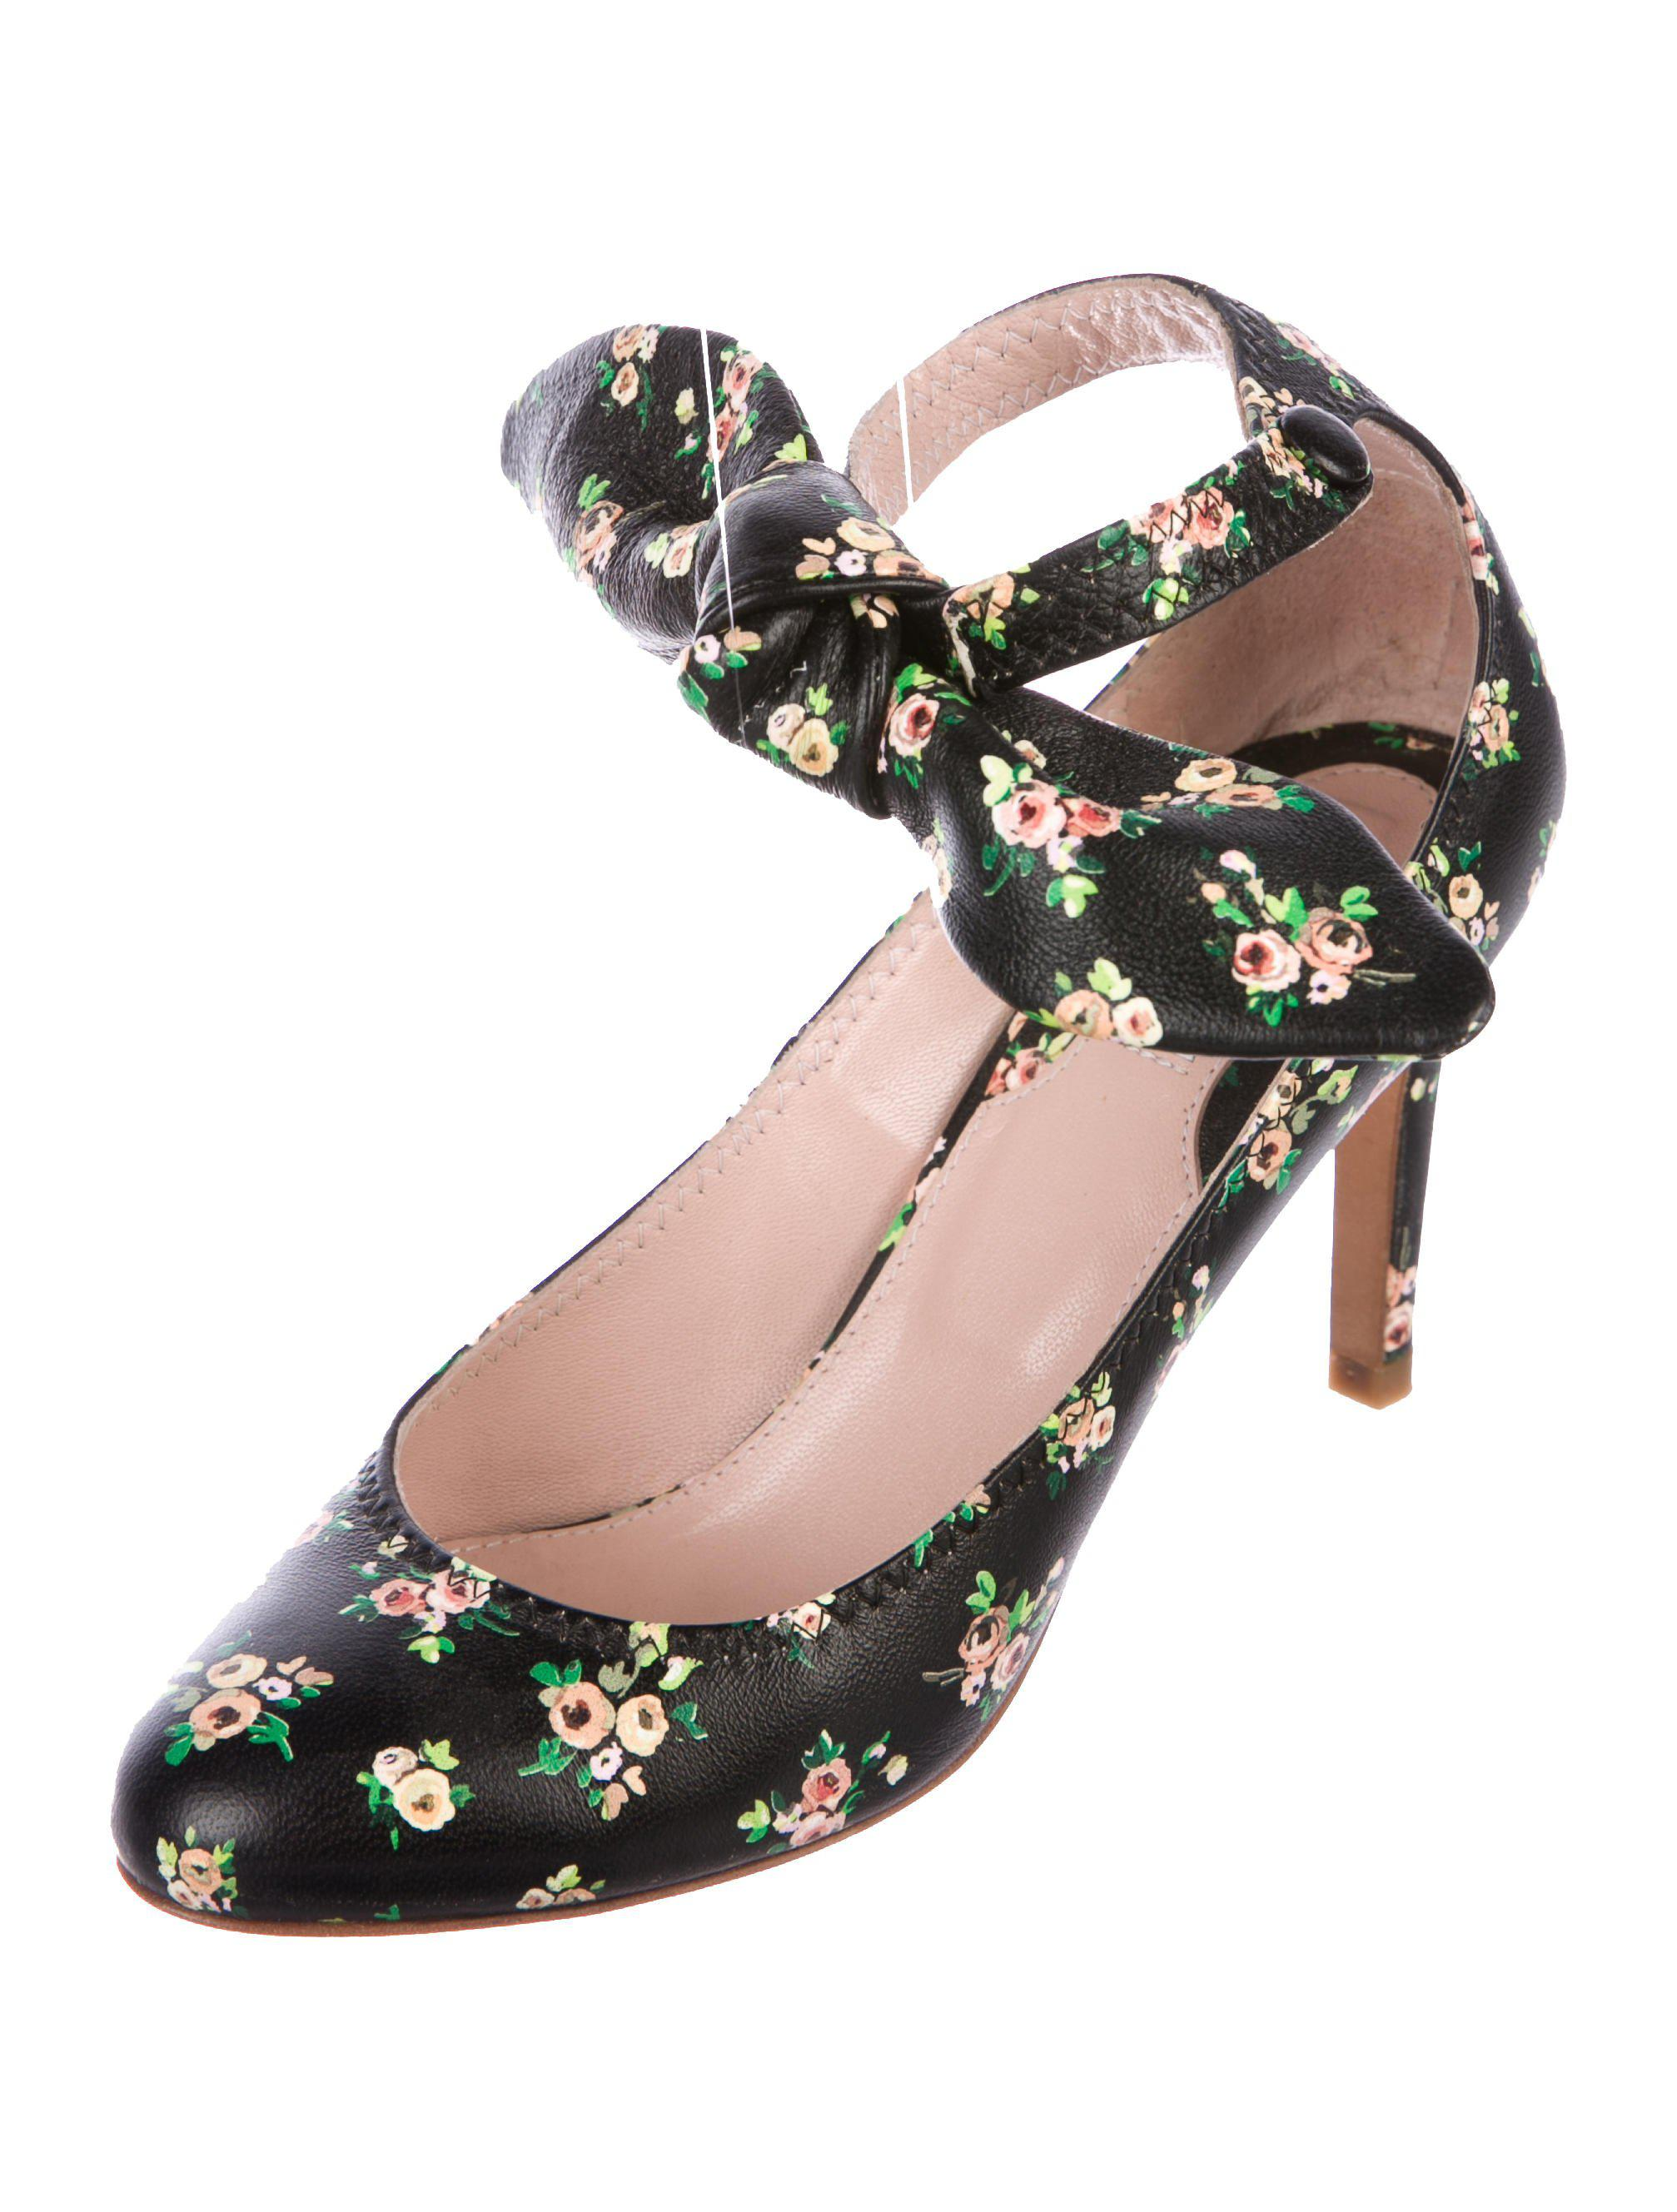 Carven Floral Leather Pumps buy cheap shopping online get to buy cheap price 7fGSZREyf